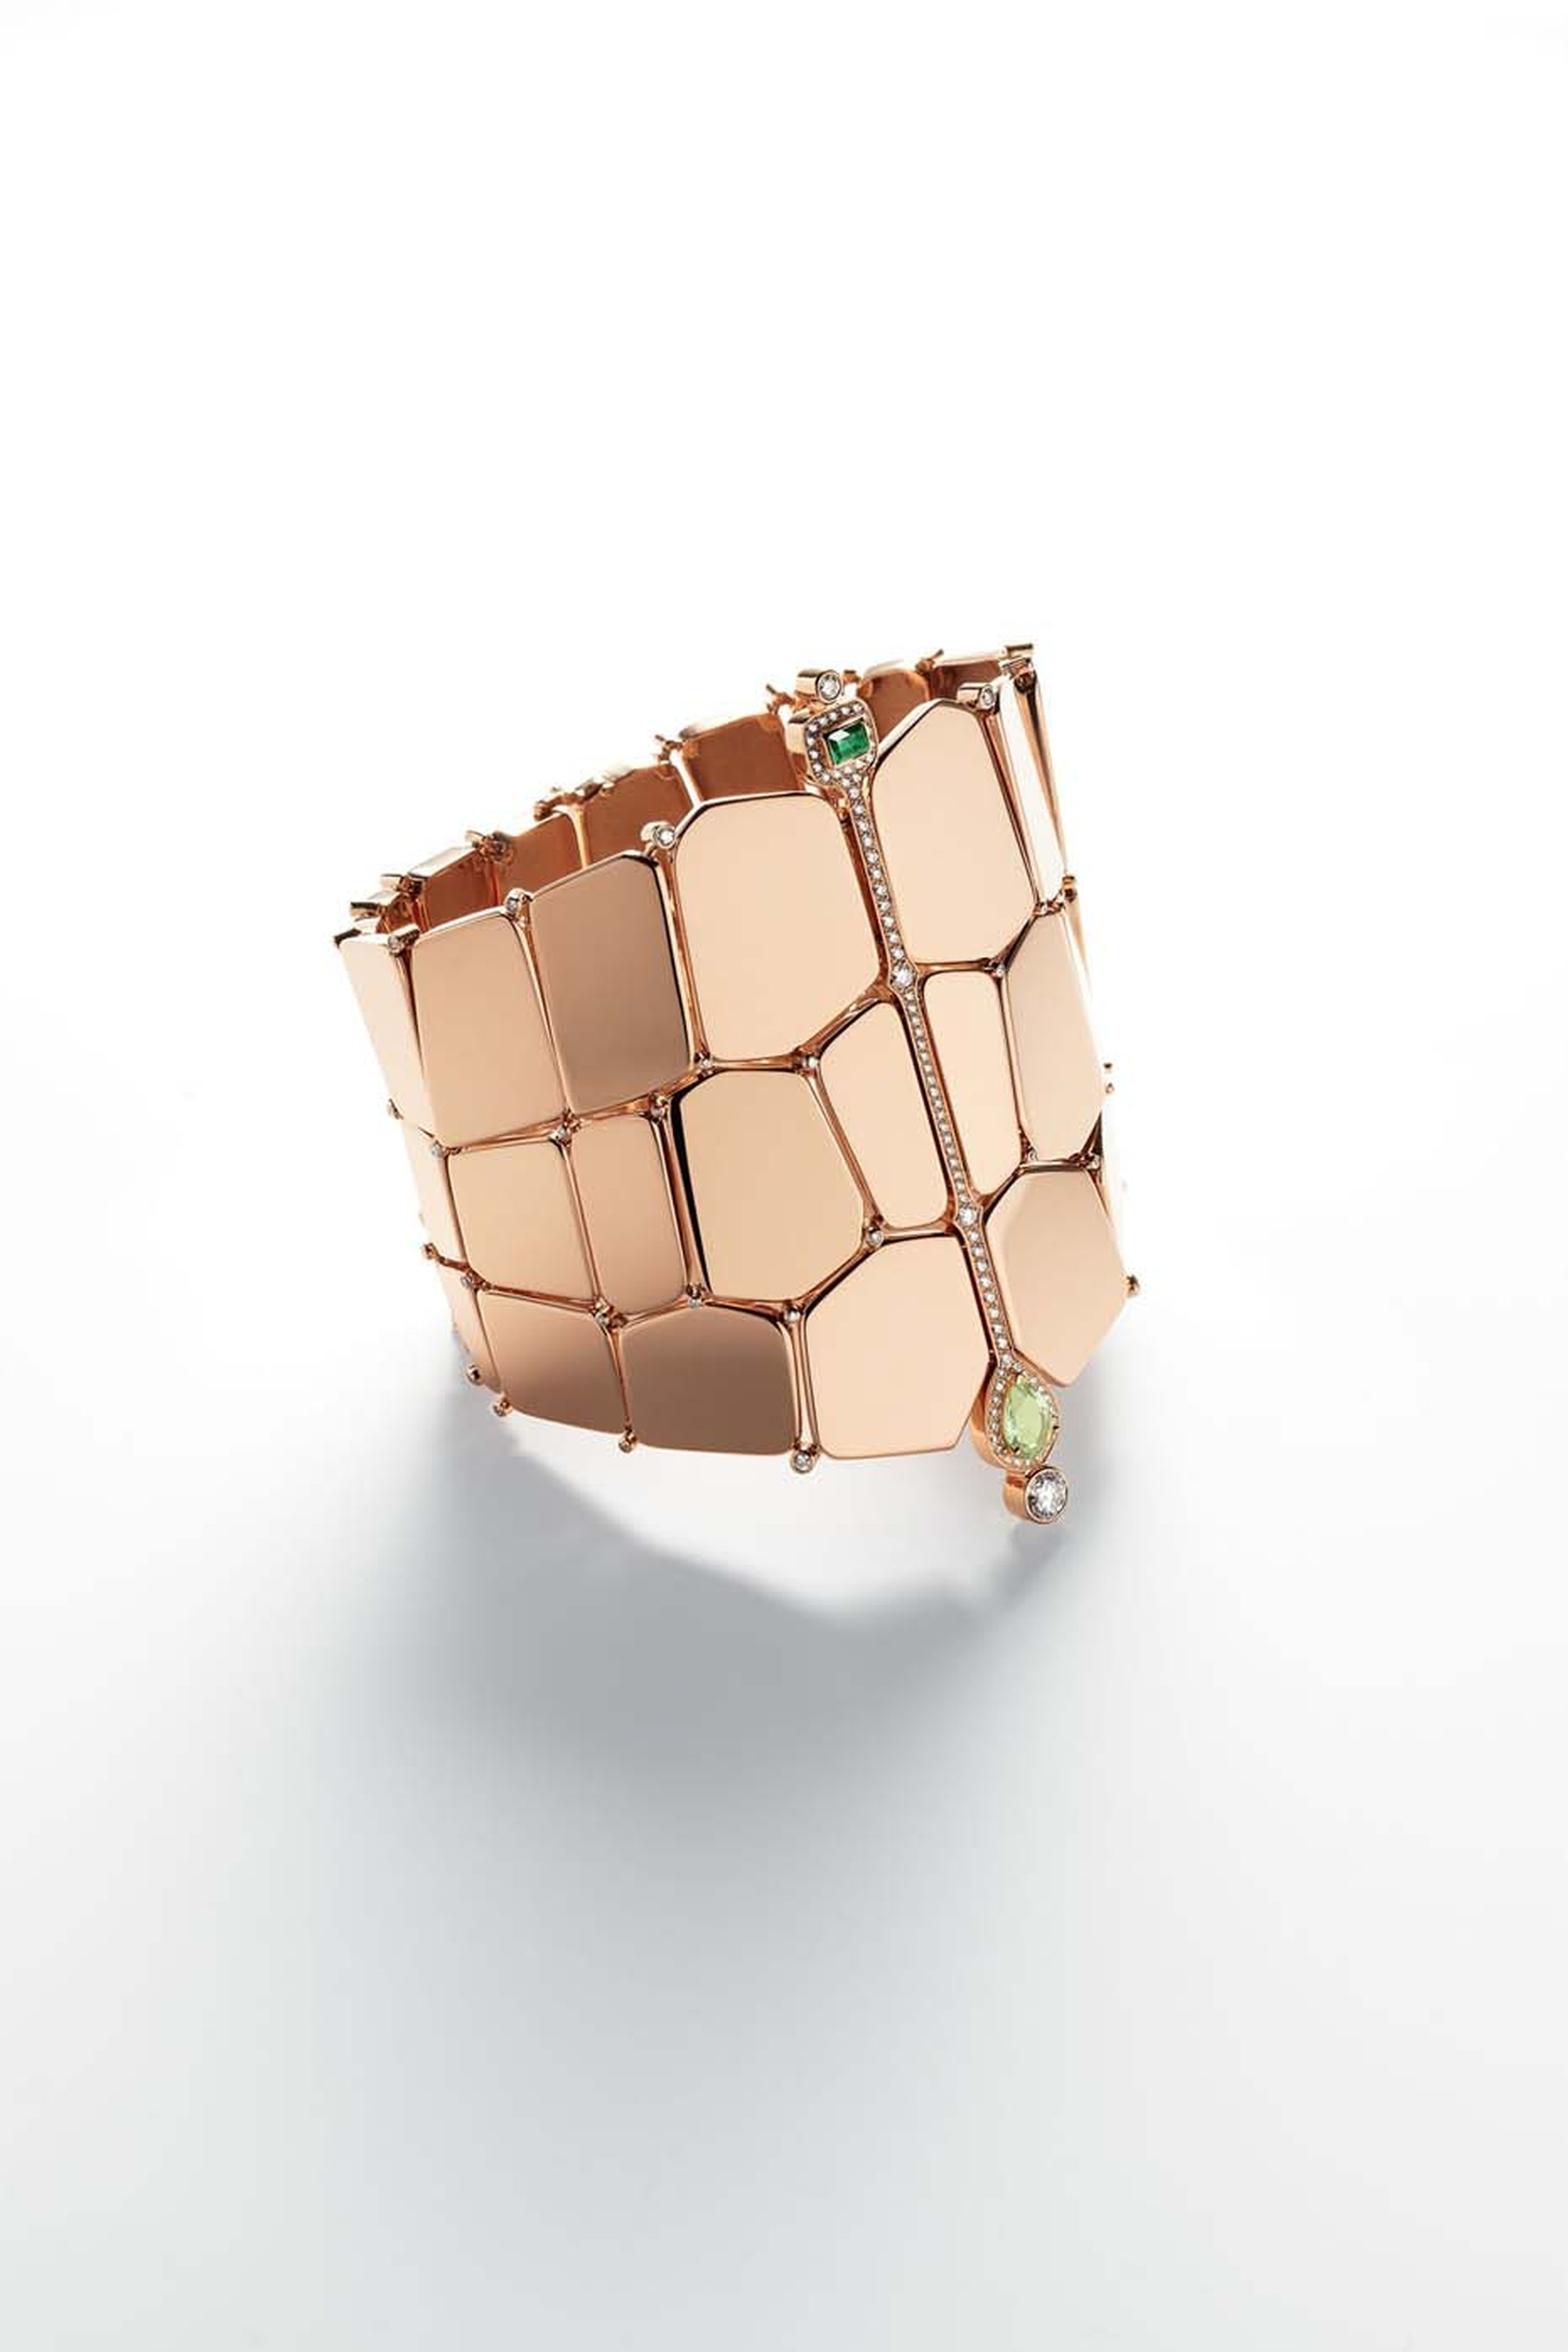 Hermès Niloticus rose gold bracelet set with a pear-shaped peridot, iolite and brilliant-cut diamonds